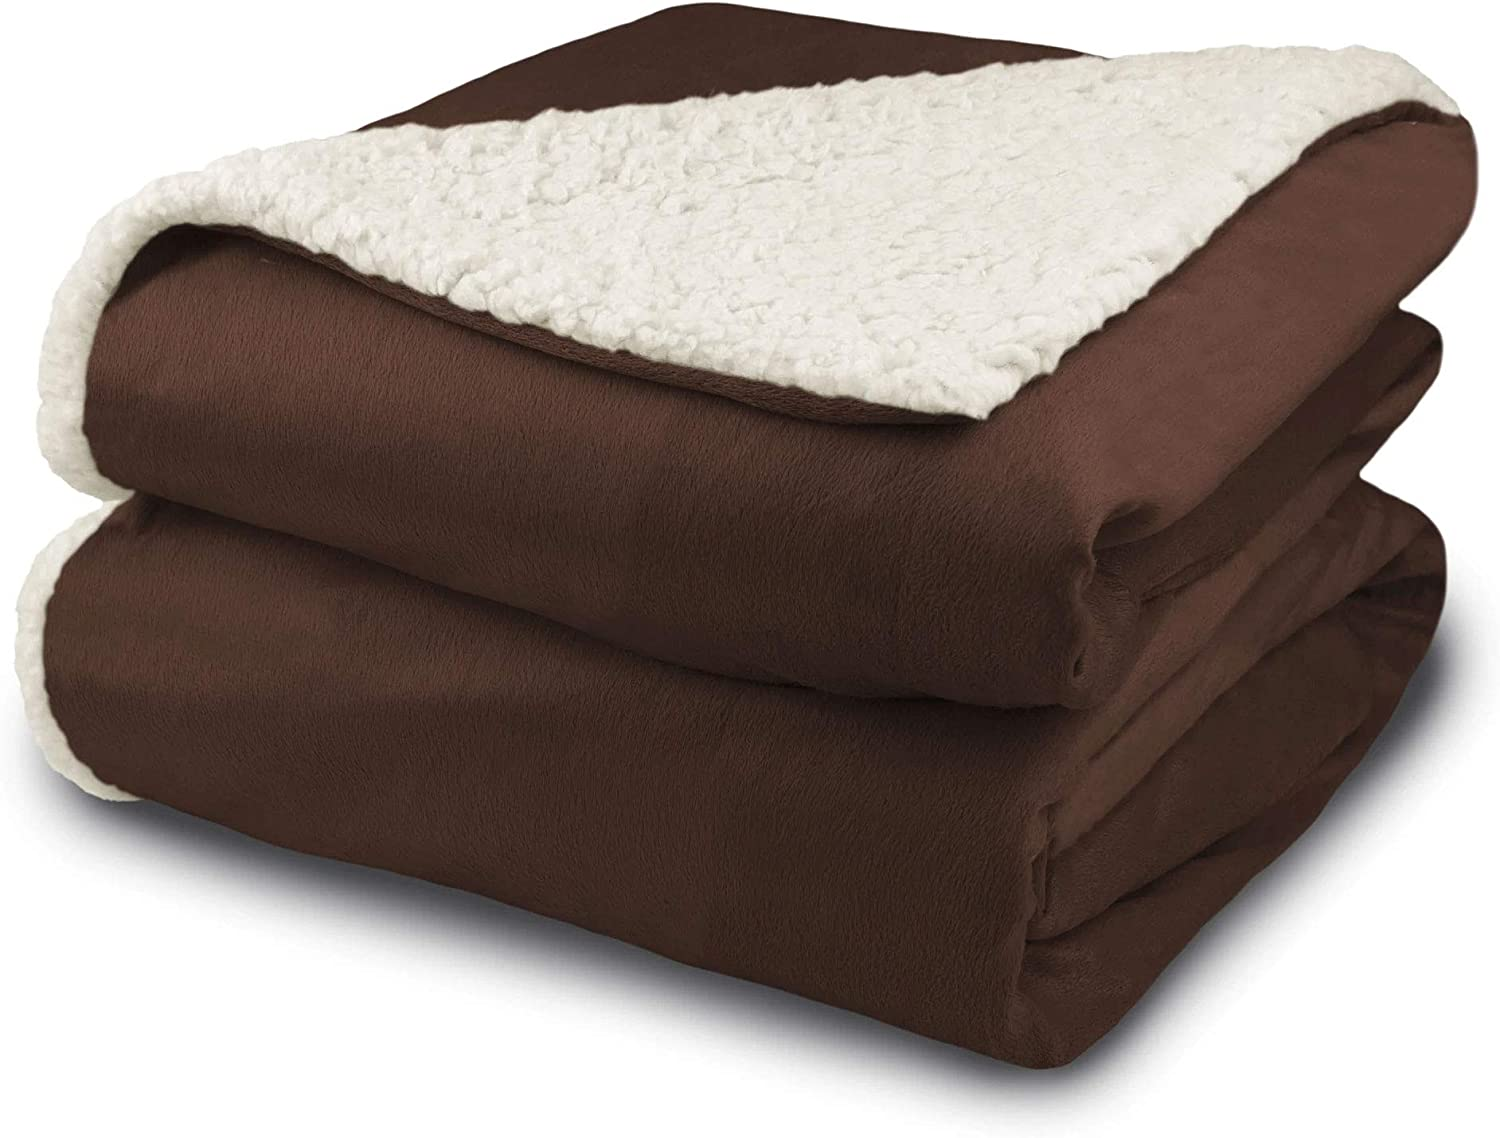 Full Sage Biddeford 6001-9051136-635 Electric Heated Micro Mink//Sherpa Blanket